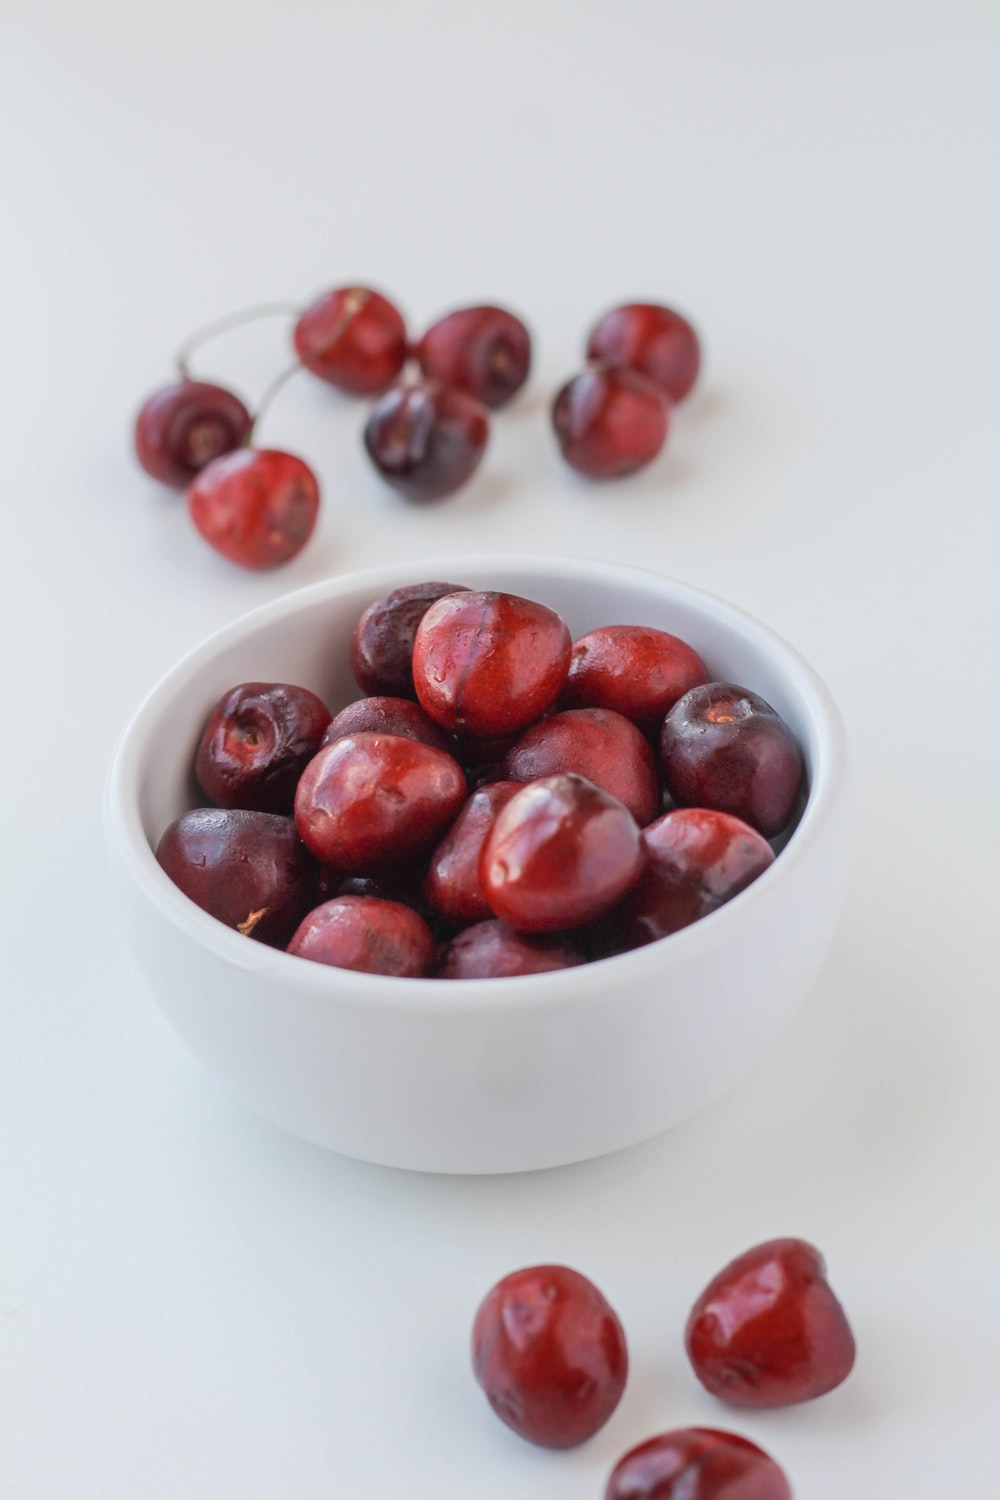 red round fruits in white ceramic bowl